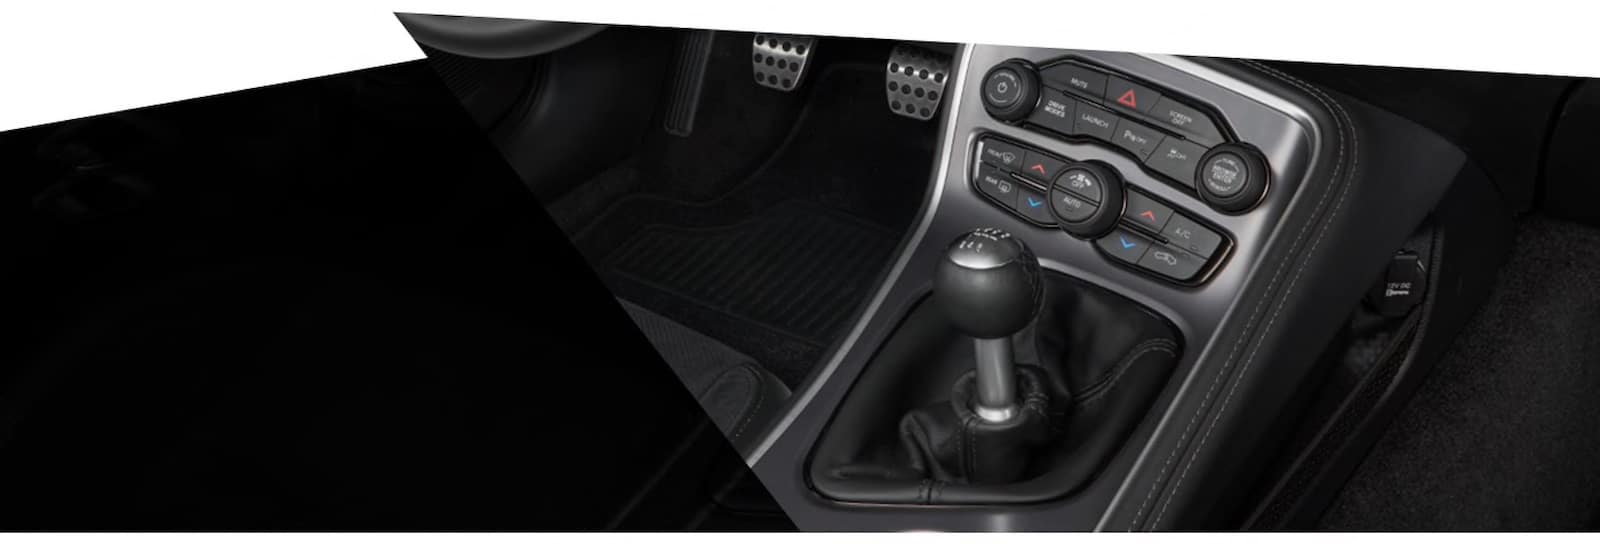 2021 Dodge Challenger six-speed manual transmission available